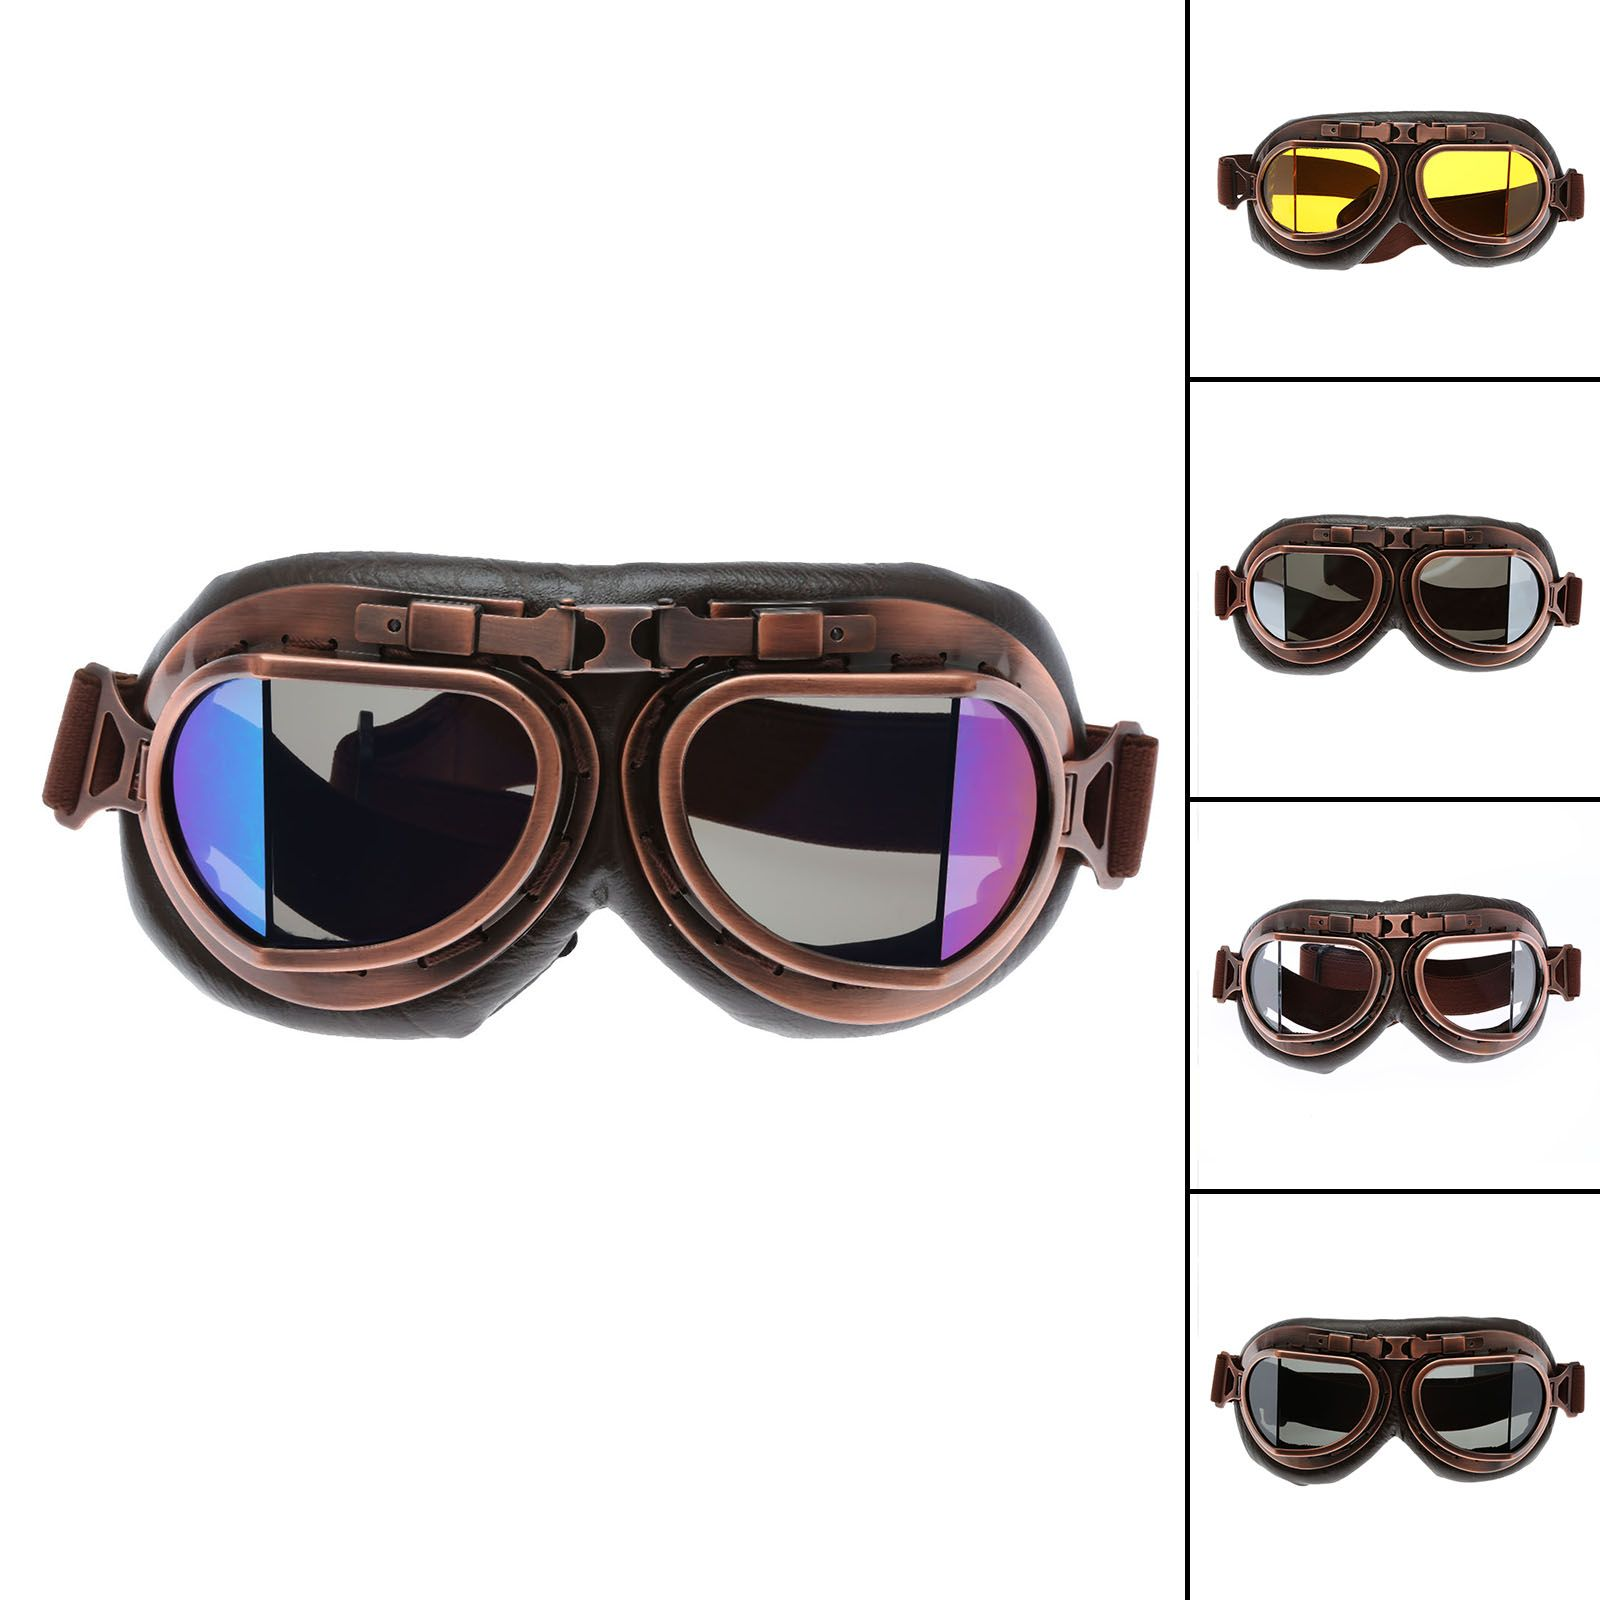 Motorcycle Goggles Glasses Vintage Motocross Classic Goggles Retro Aviator Pilot Cruiser Steampunk ATV <font><b>Bike</b></font> UV Protection Copper